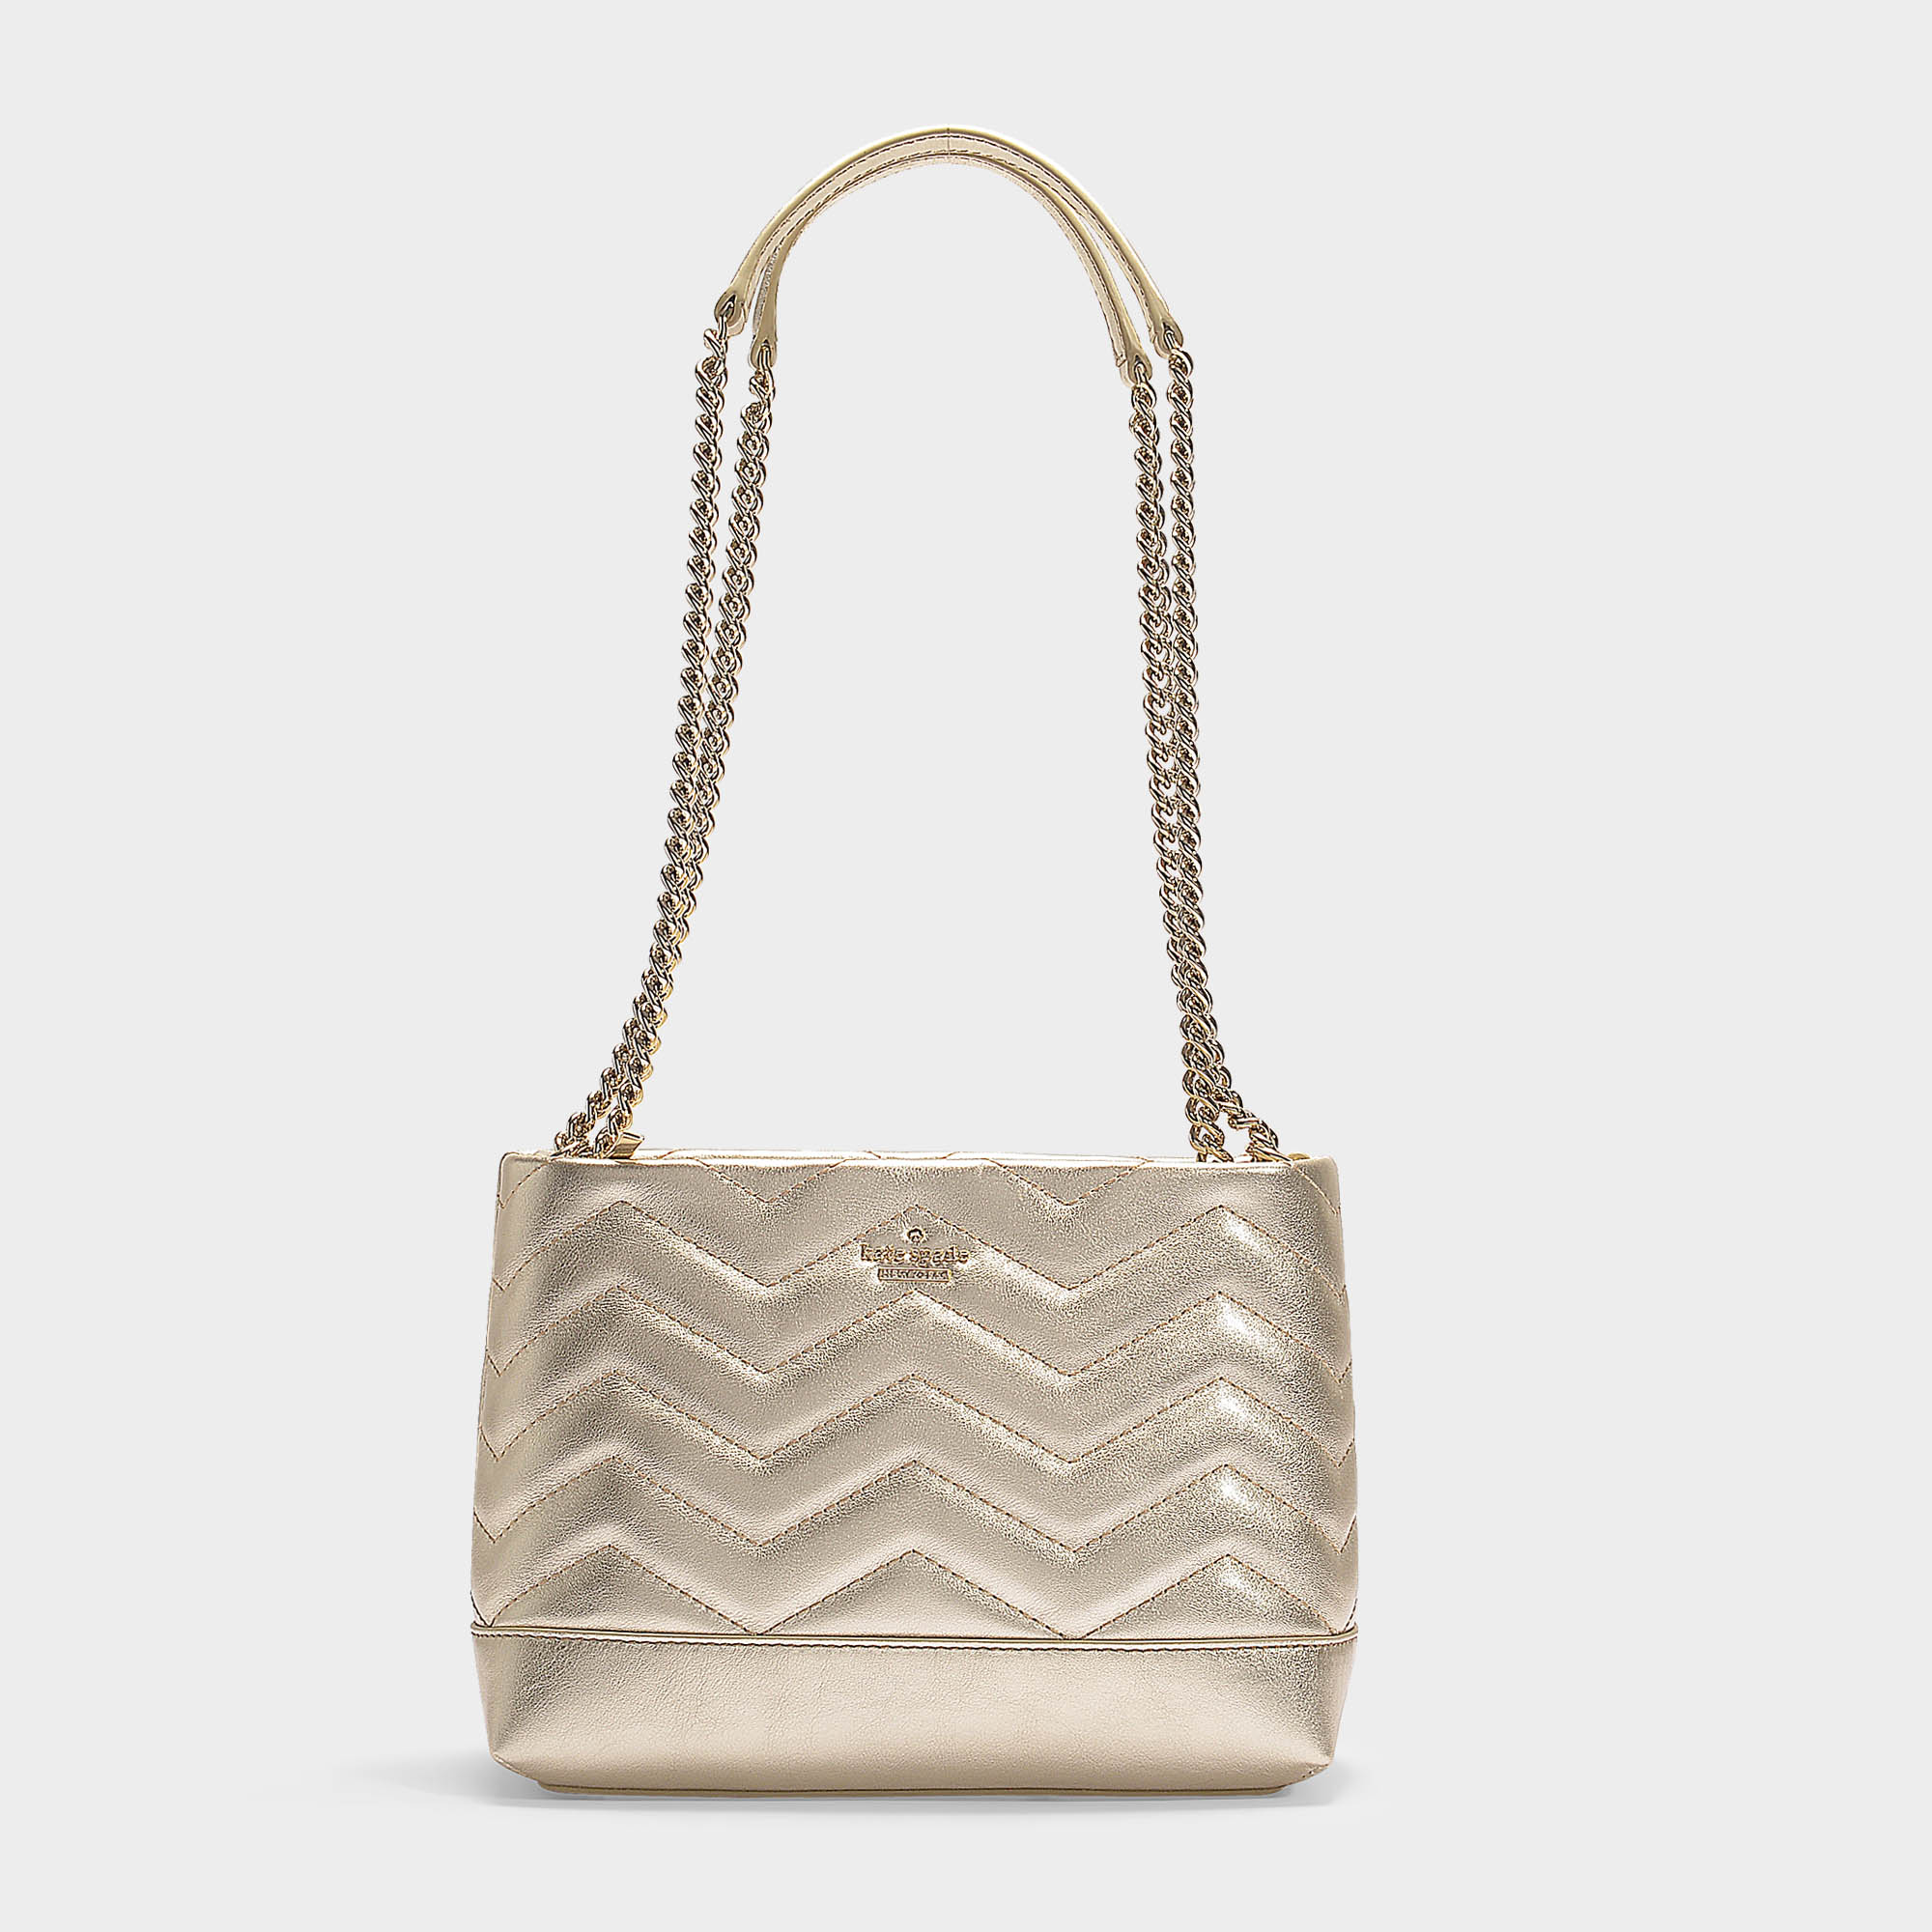 01b0b4082 Kate Spade New York | Reese Park Small Lorie Shoulder Bag In Pale Gold Quilted  Leather